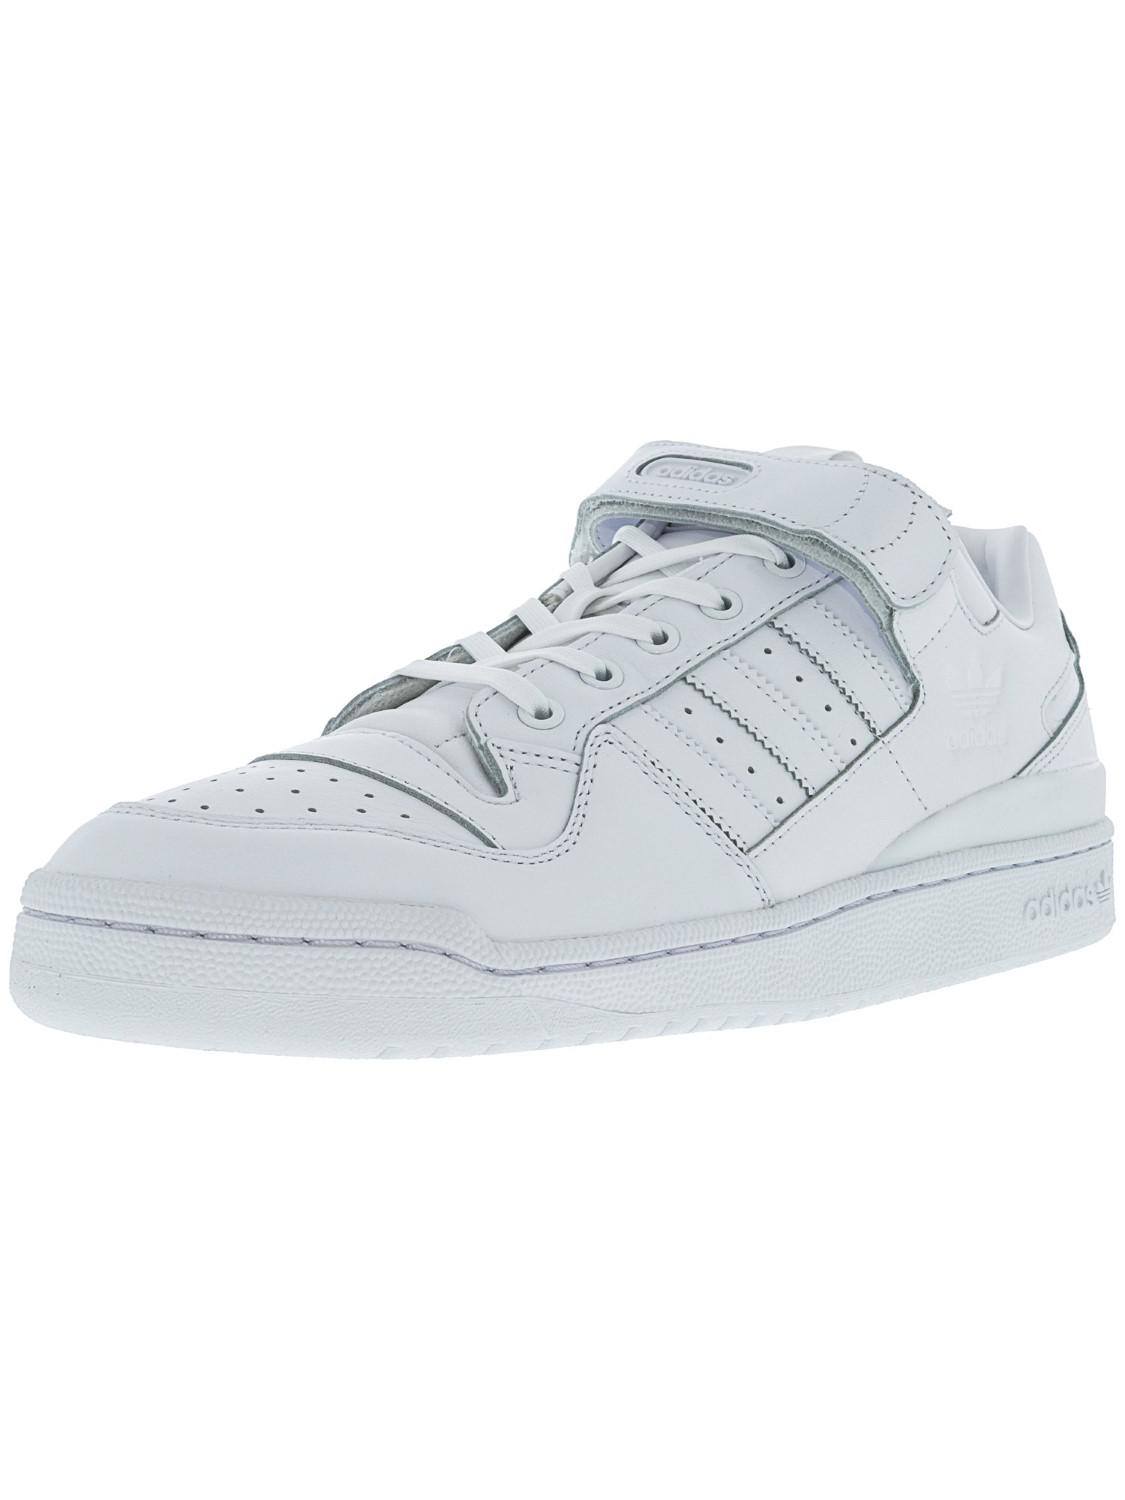 fd23063e6b6516 Lyst - adidas Ba7276   Forum Lo Refined Originals White Casual Shoe ...